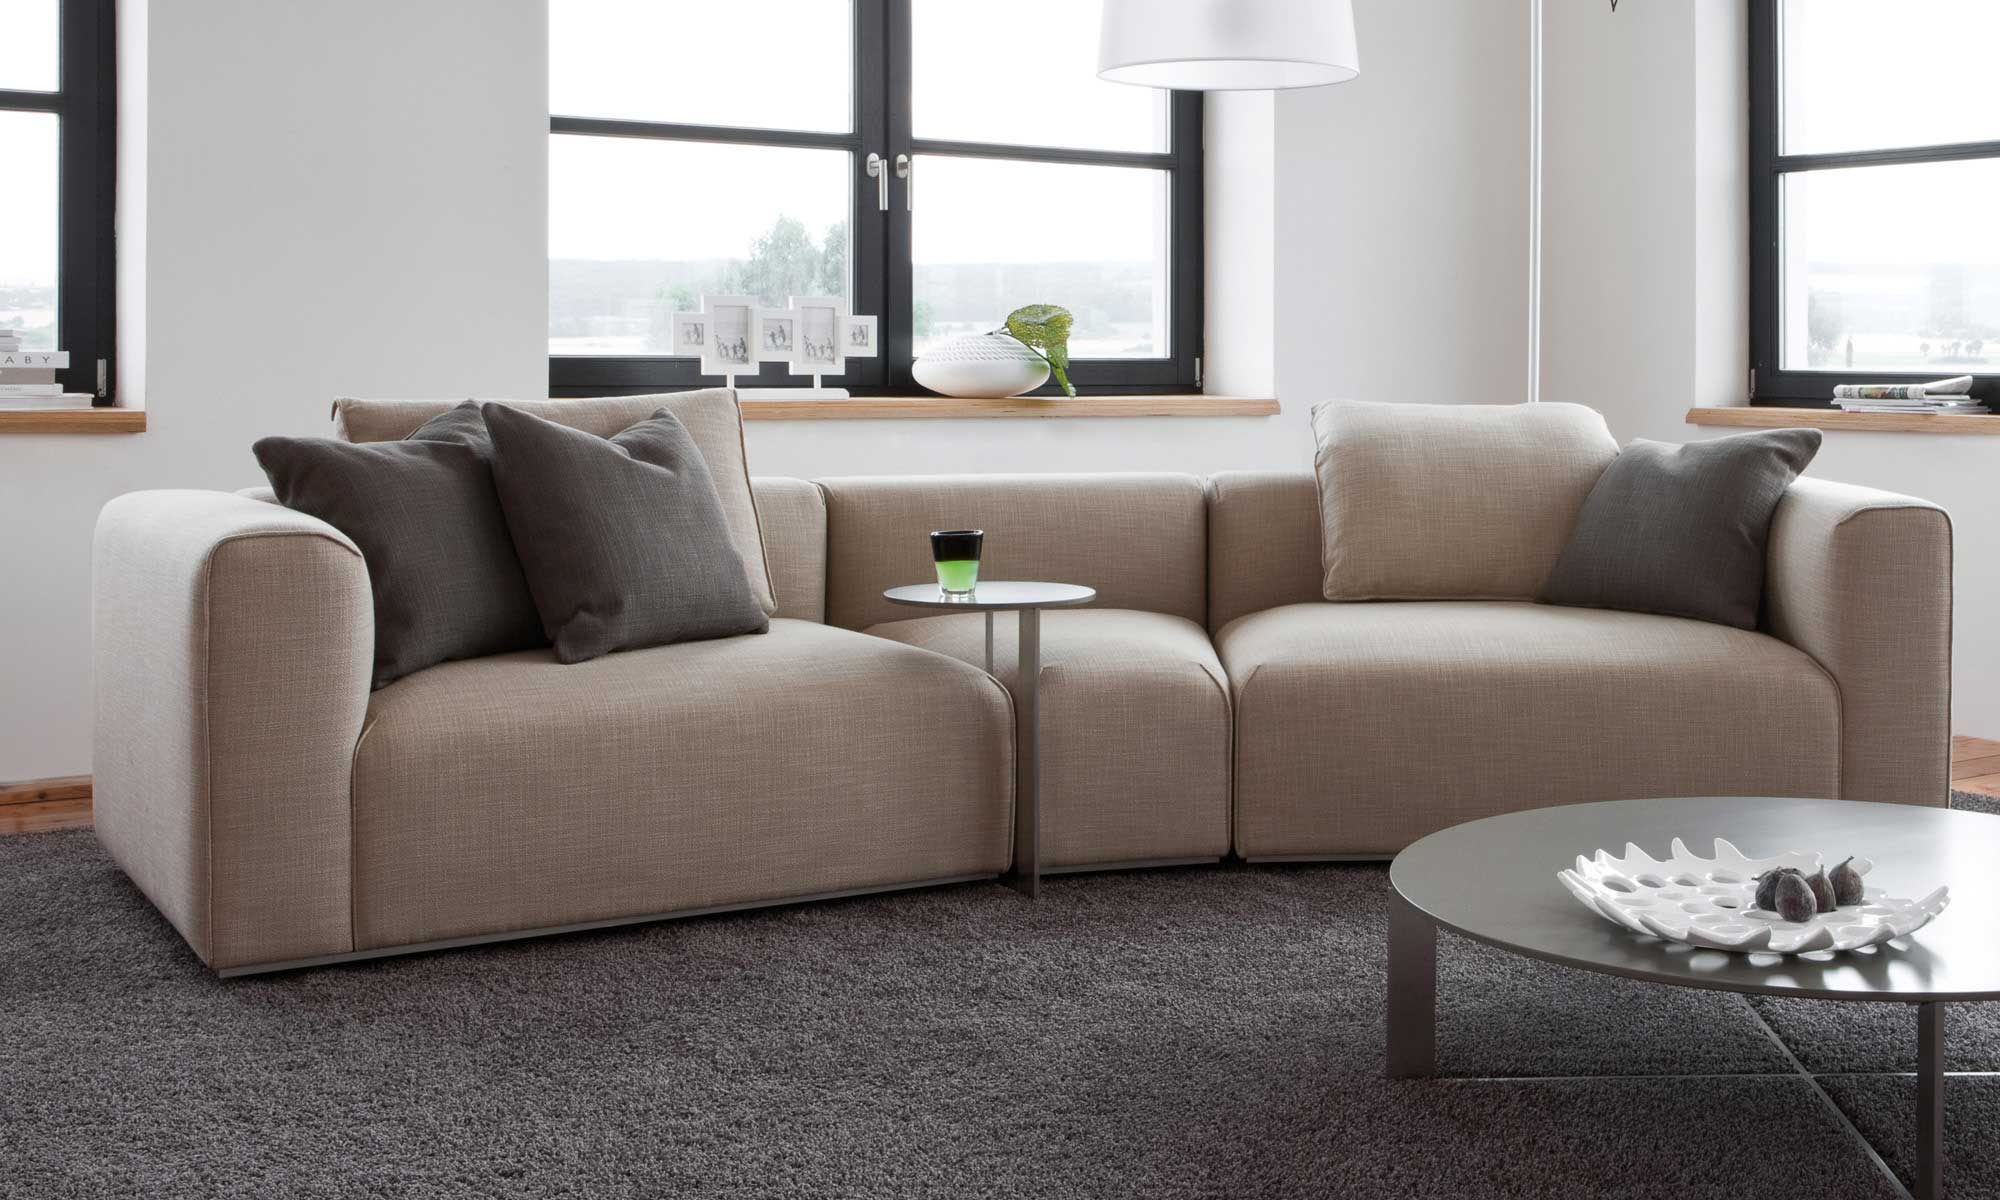 PURE ELEMENTS bodennah, Sofa (ipdesign)